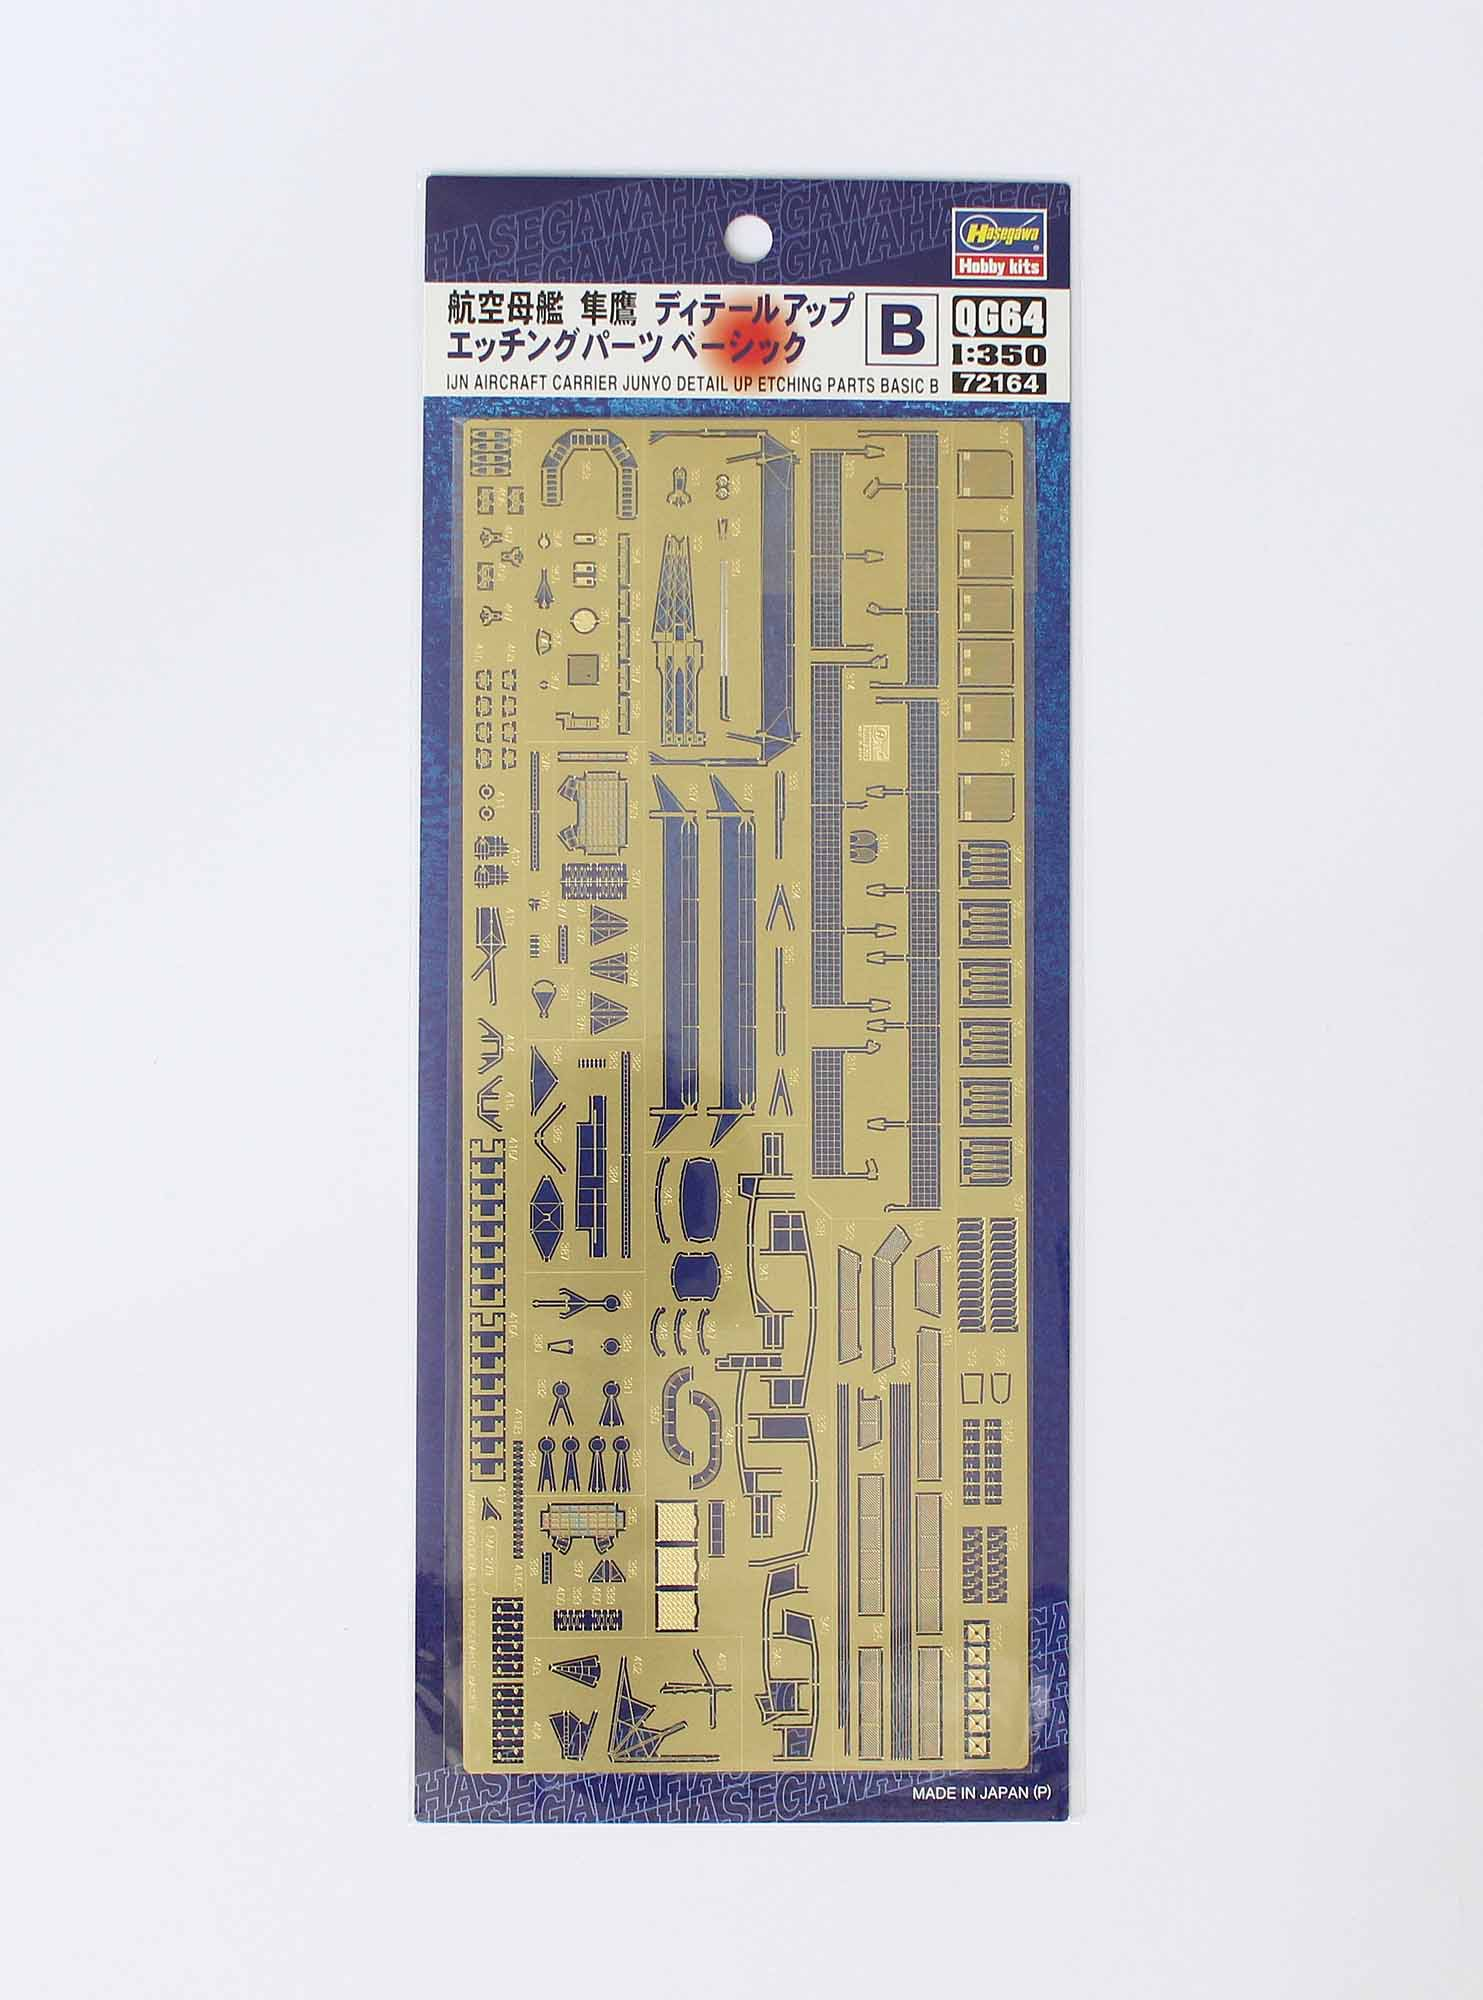 Hasegawa Ijn Aircraft Carrier Junyo Detail Up Etching Parts Basic B QG64